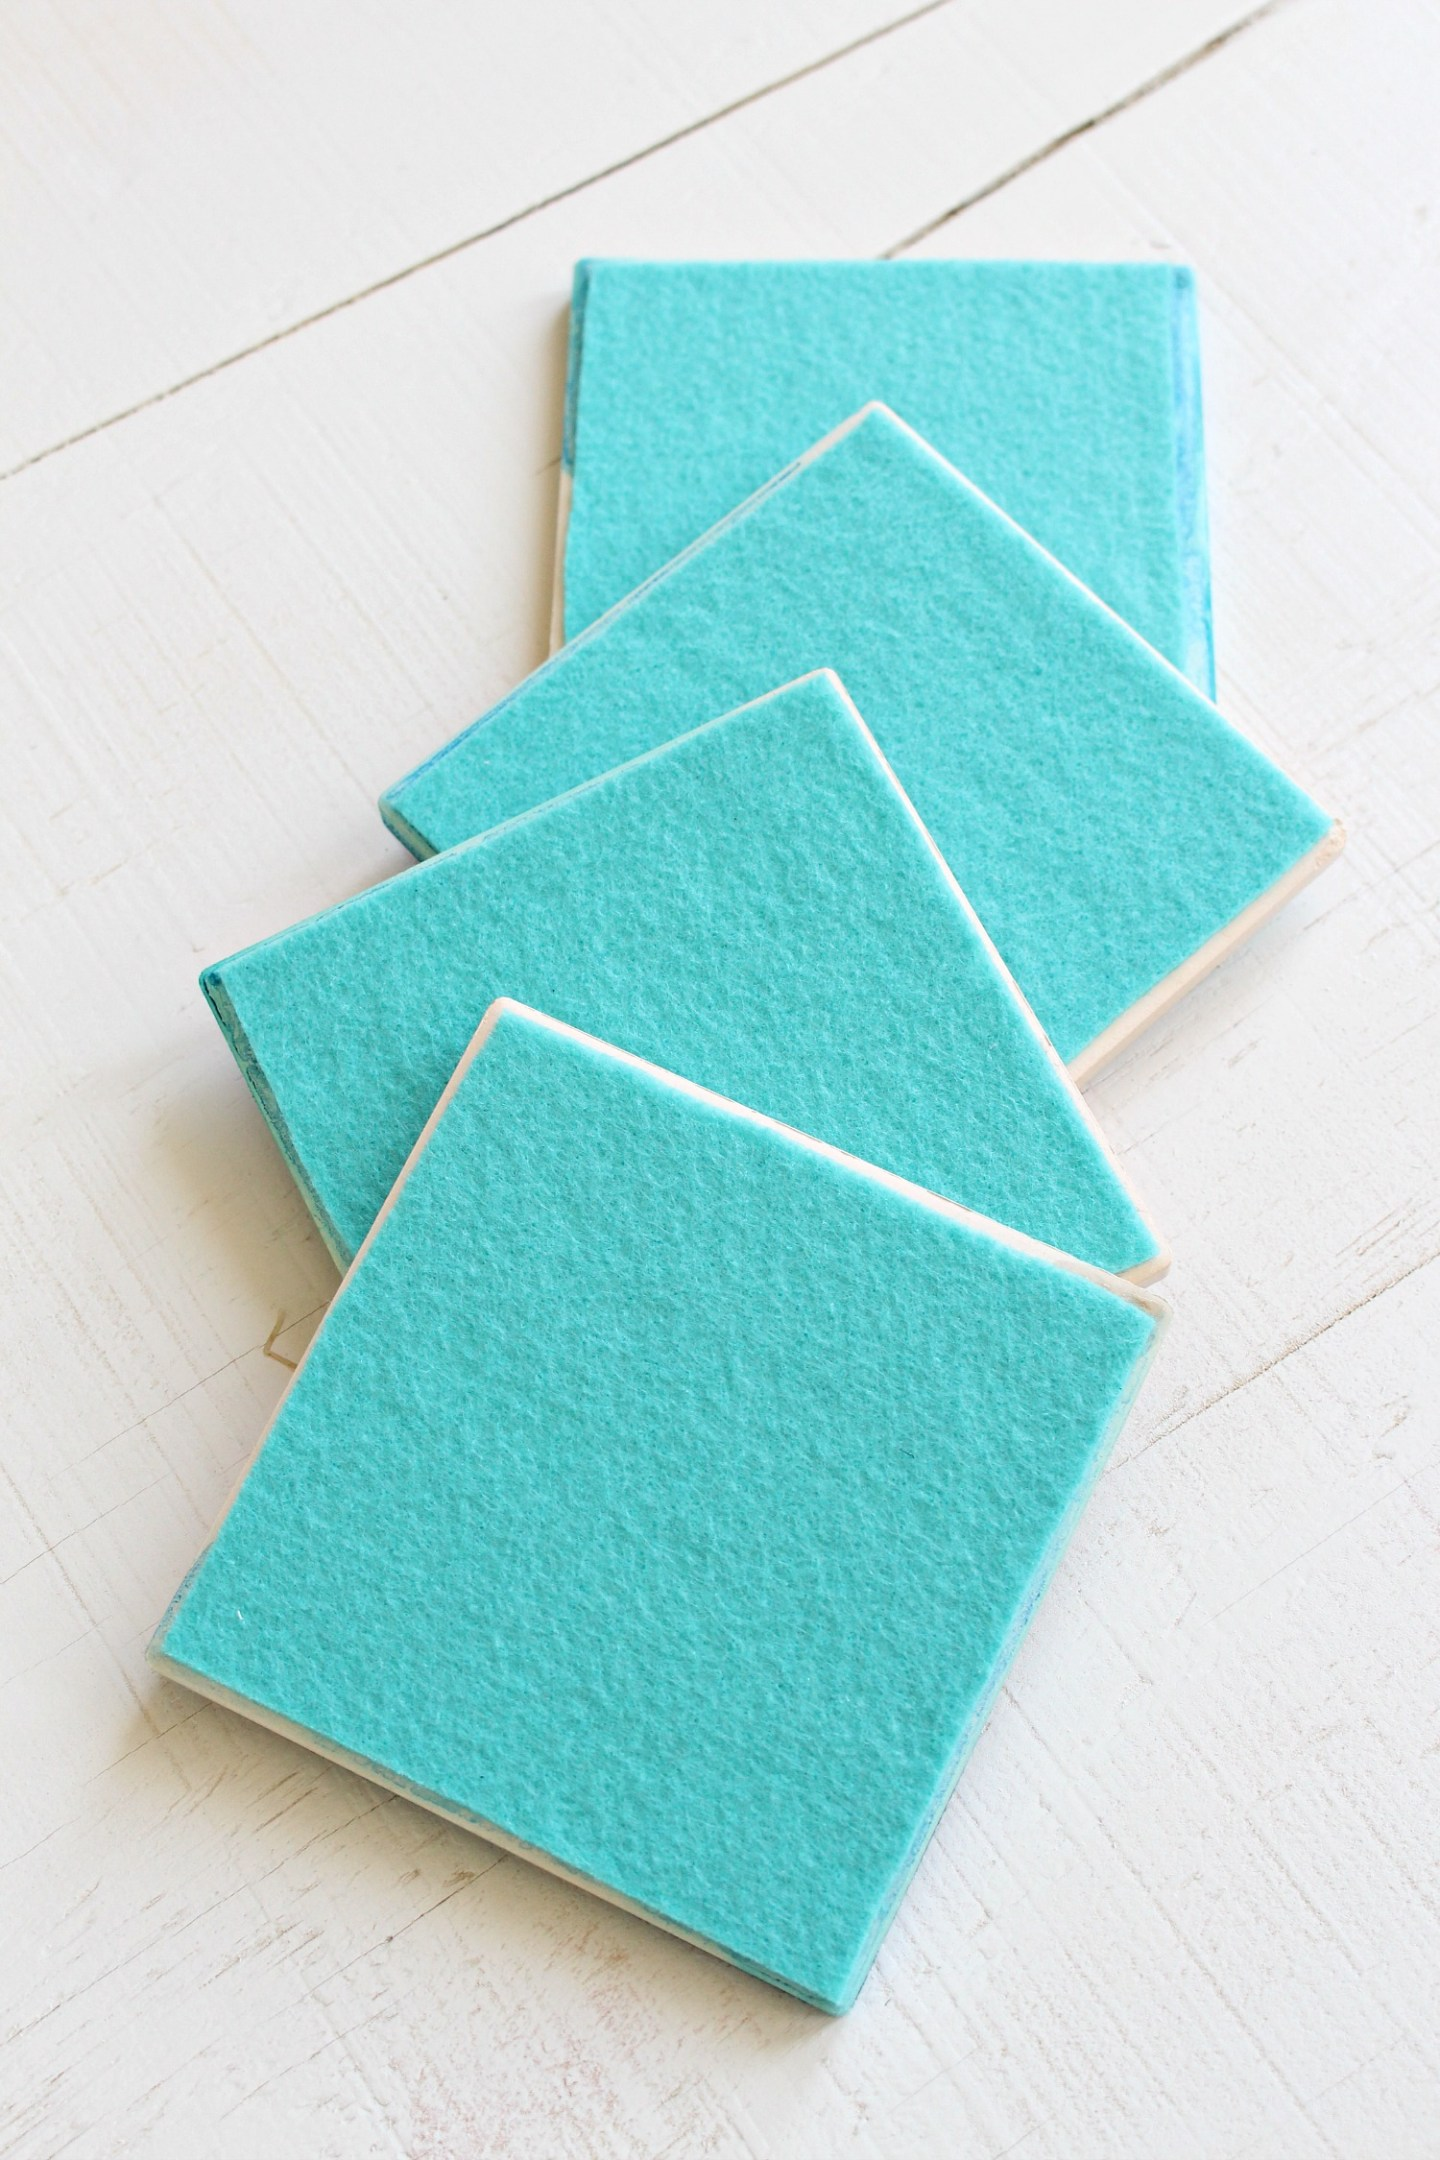 Turn Tiles into Coaster by Adding Felt on the Back